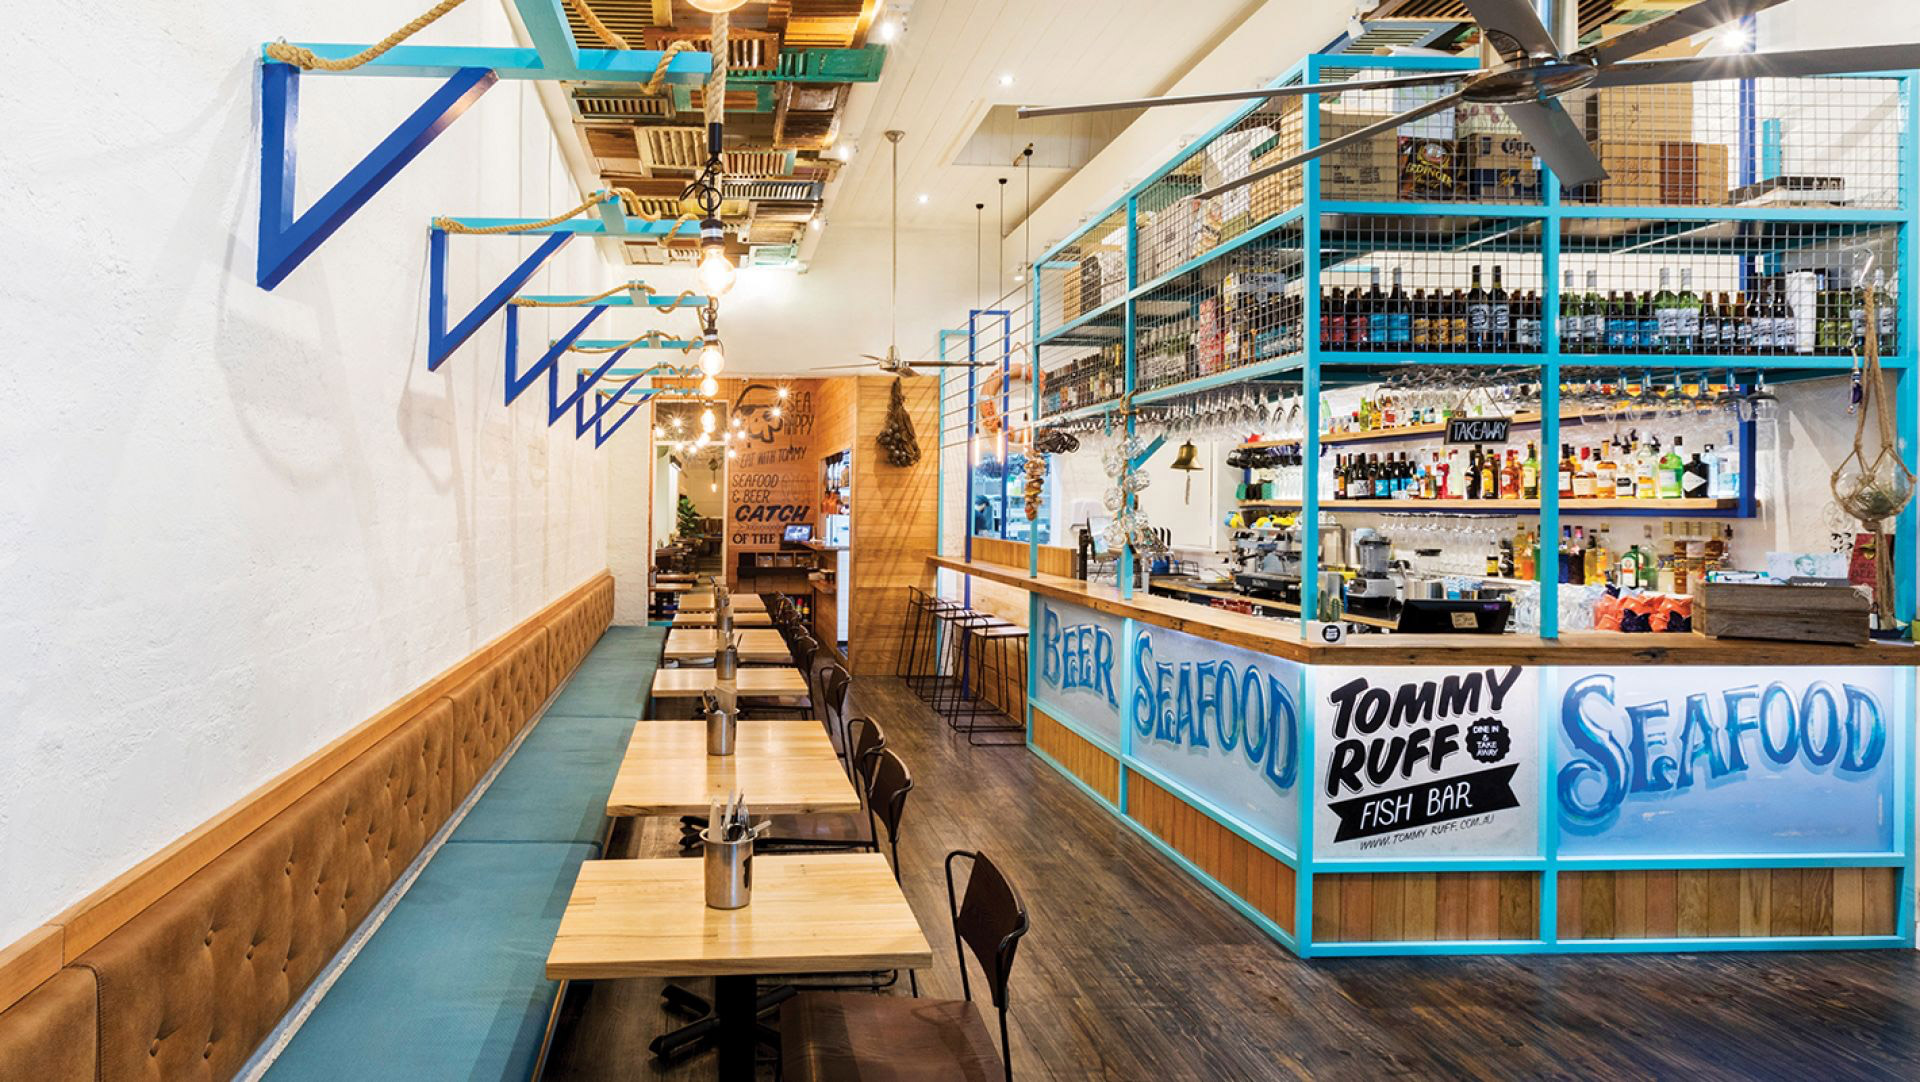 Tommy Ruff Fish Bar. Designed by Studio Equator. @enviromeant.com